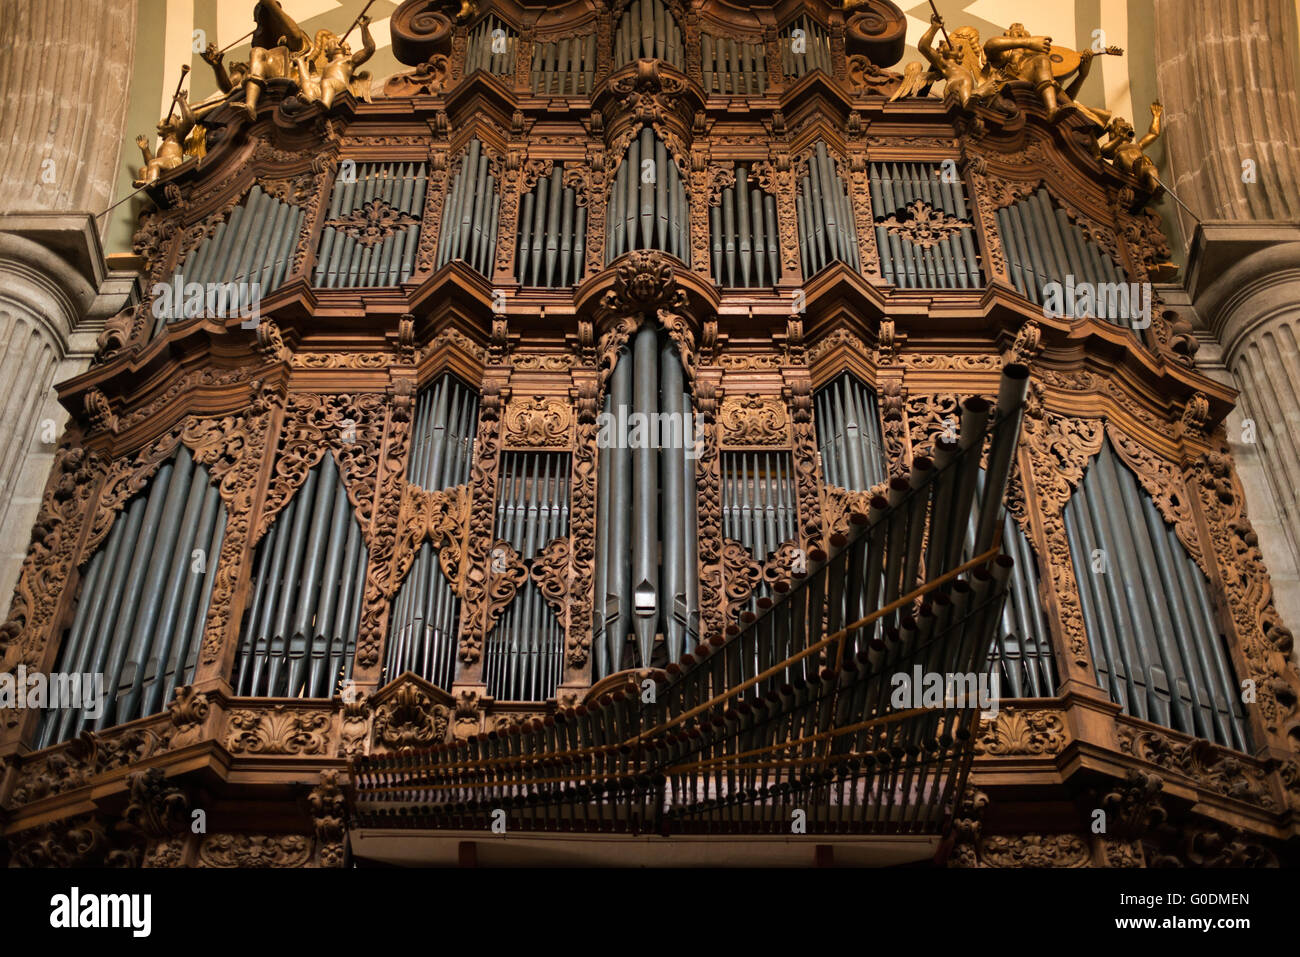 Mexico city mexico one of the two pipe organs in the metropolitan mexico city mexico one of the two pipe organs in the metropolitan cathedral the cathedral houses two of the largest 18th century pipe organs in the ccuart Image collections